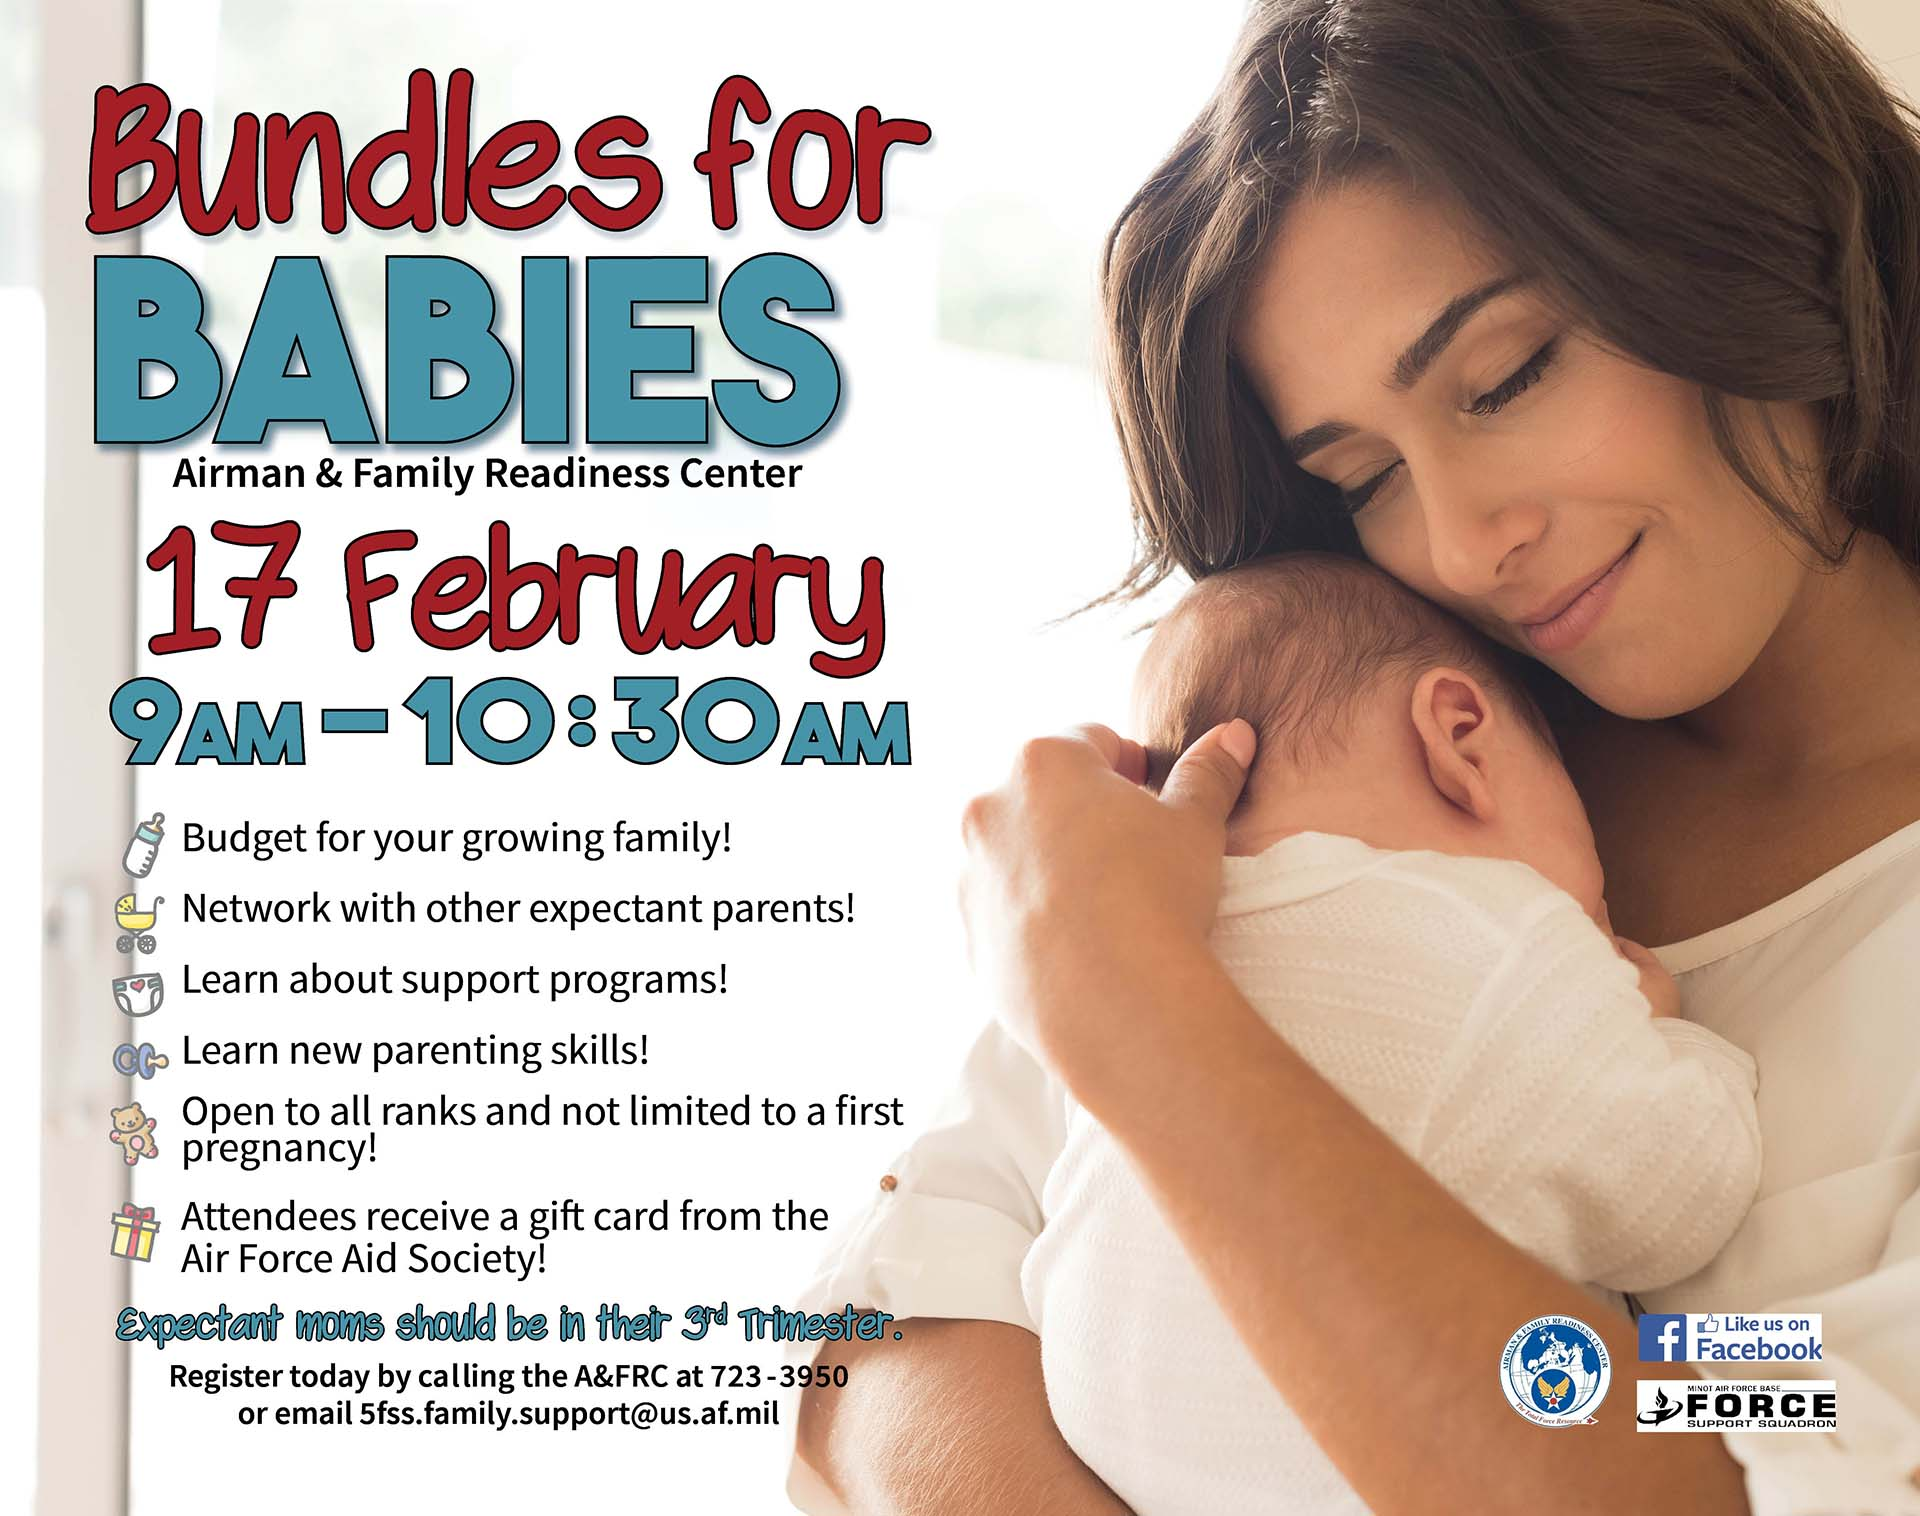 Bundles for Babies